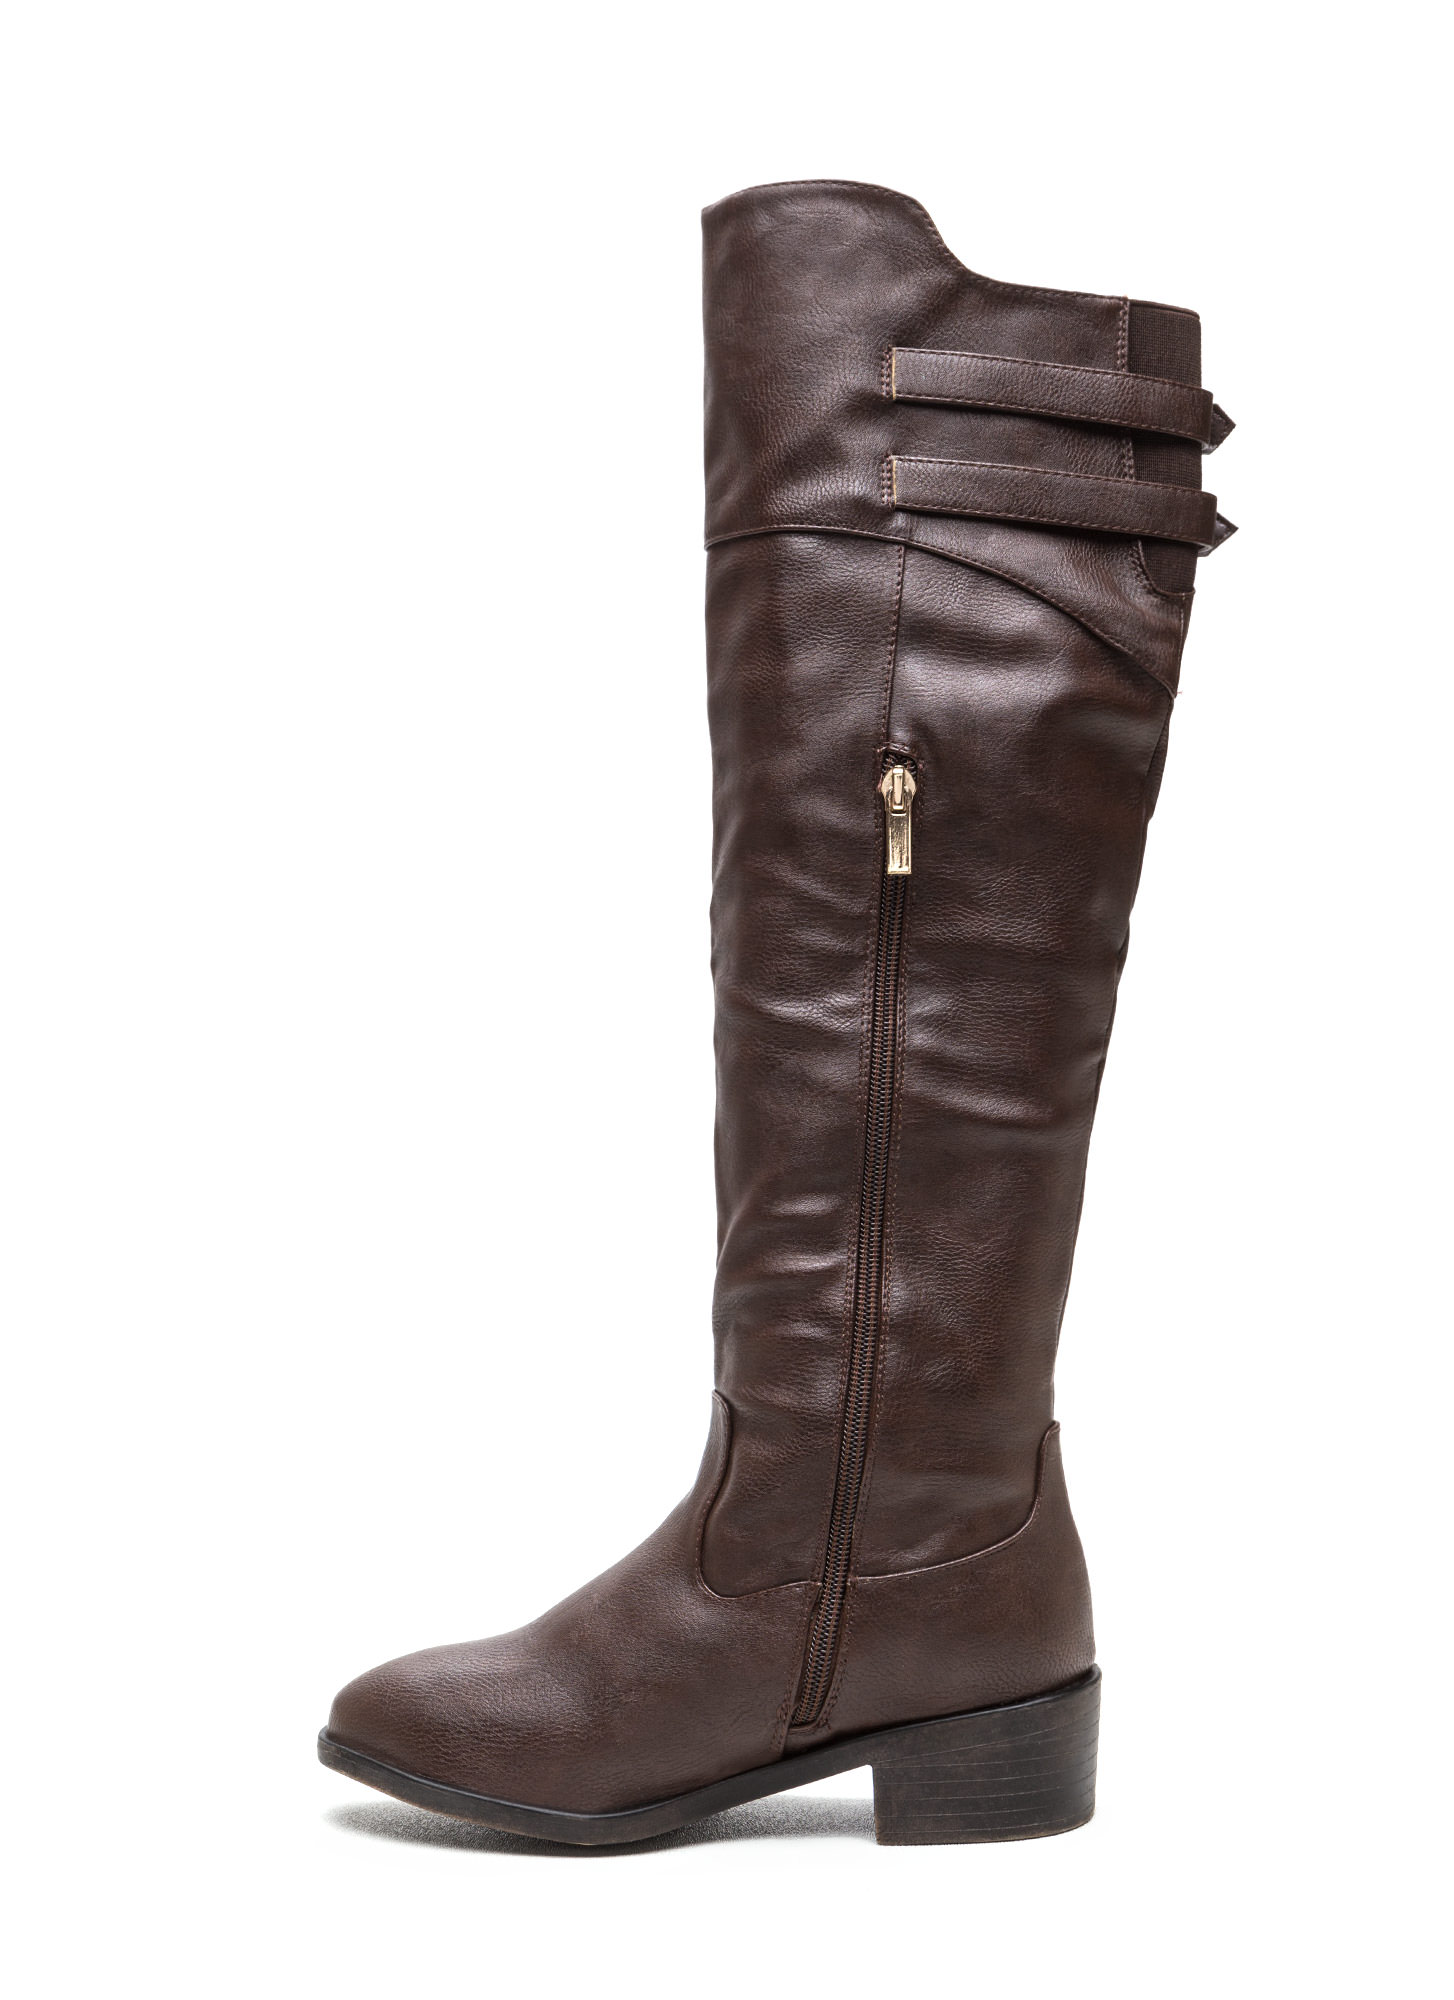 Double Trouble Strappy Boots BROWN